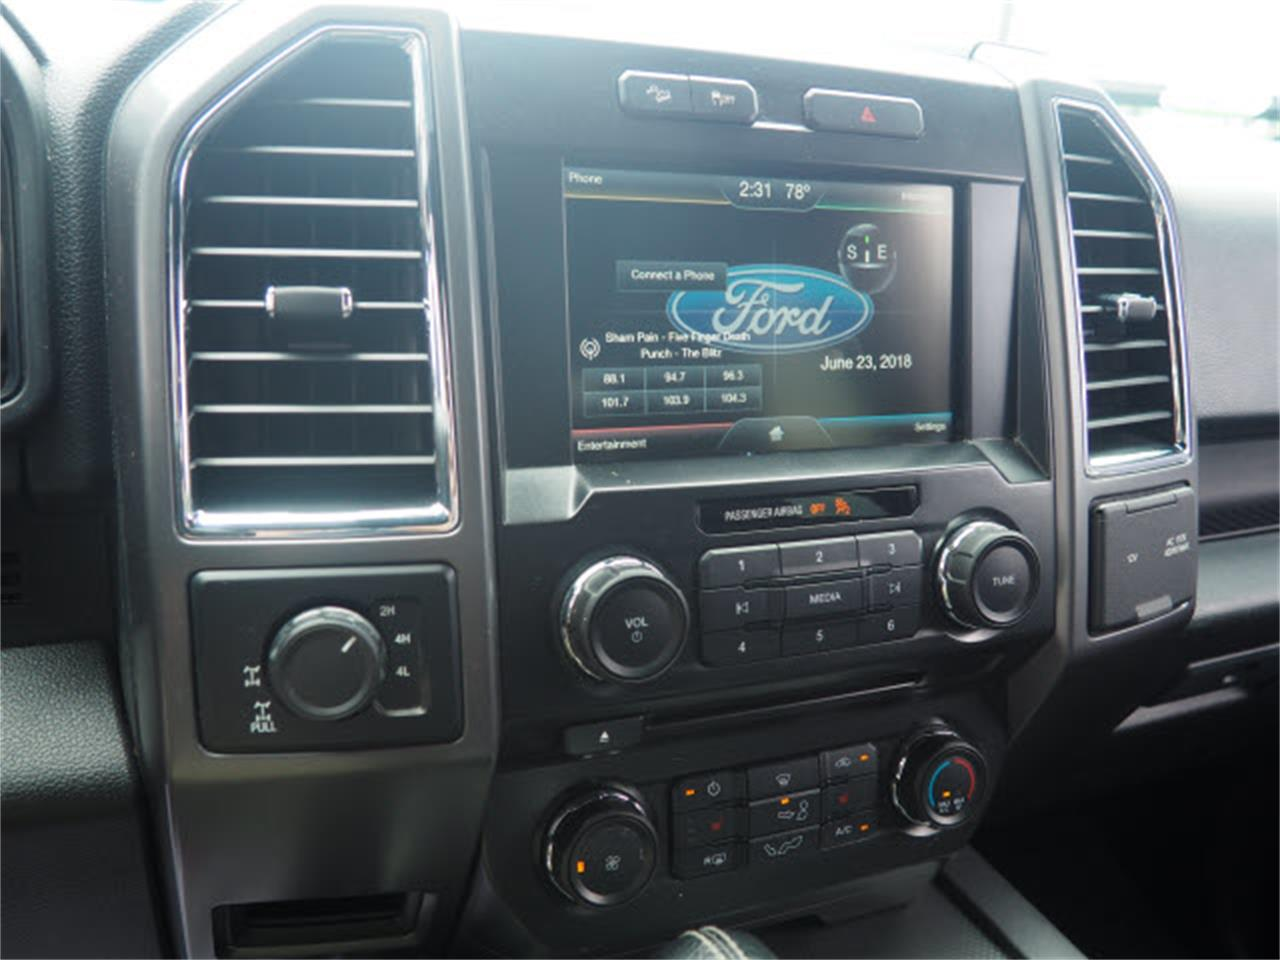 2015 Ford F150 (CC-1105393) for sale in Marysville, Ohio